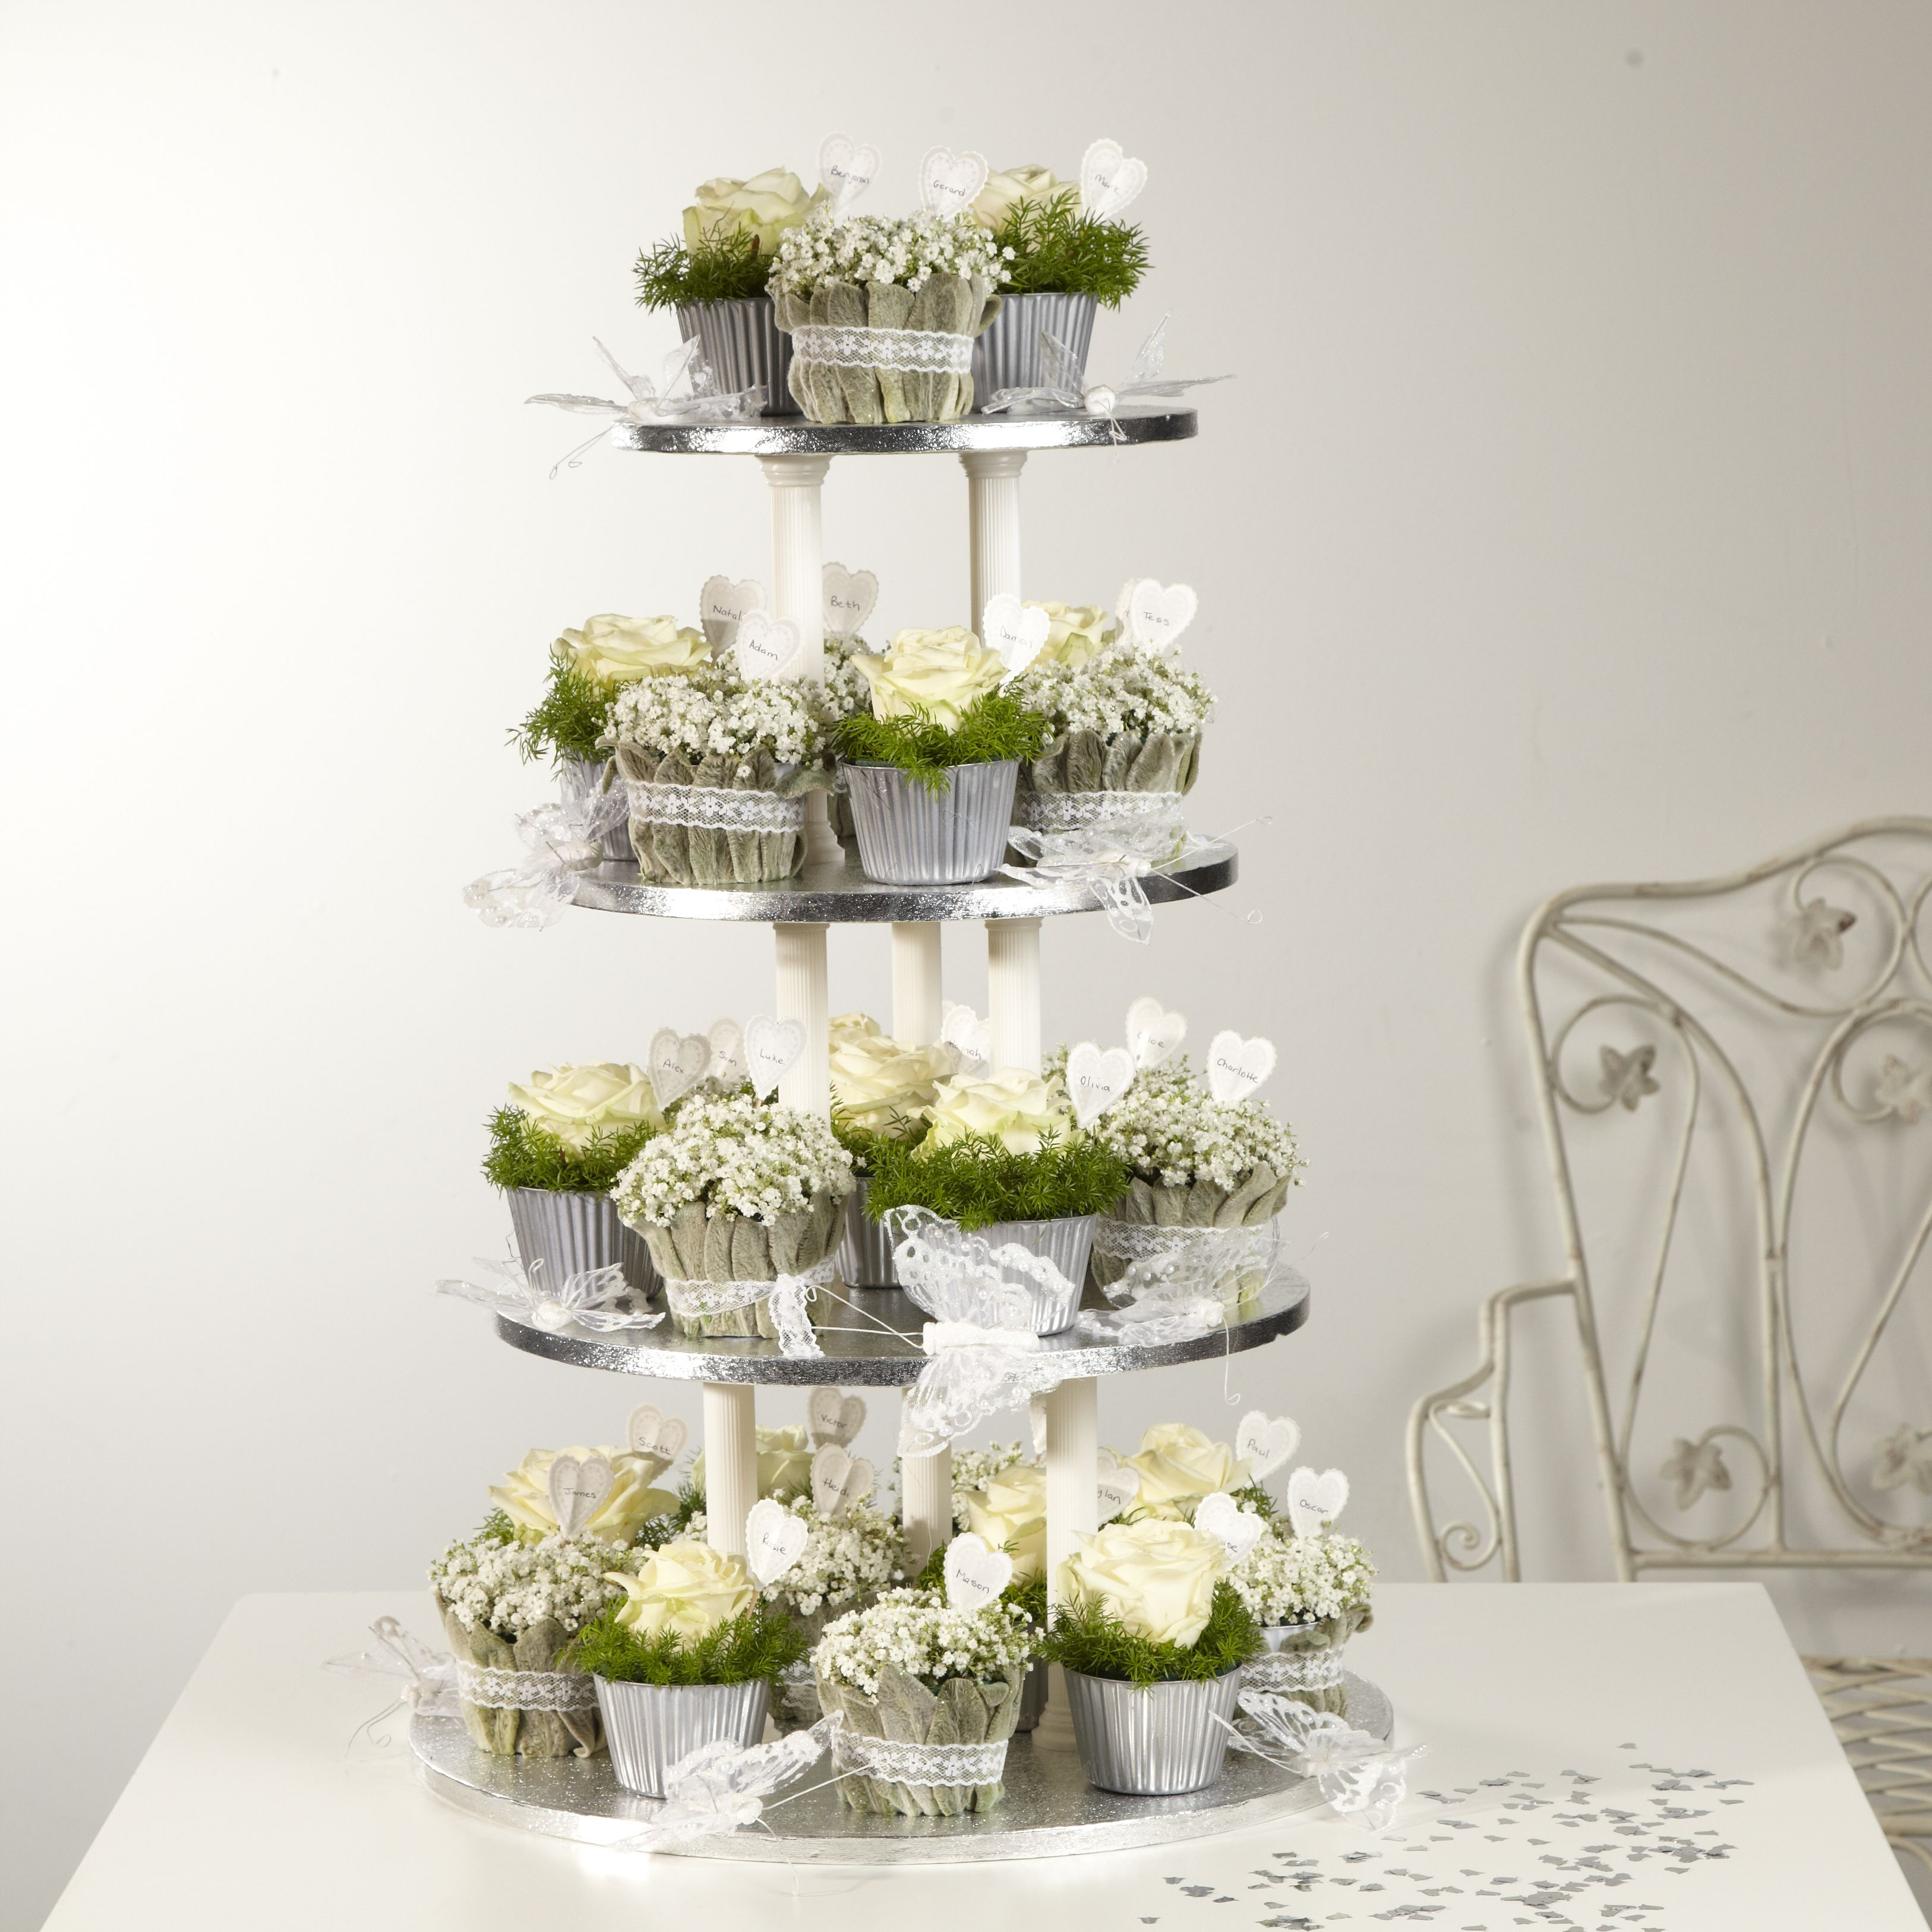 Use OASIS® Floral Cupcakes To Create This White And Silver